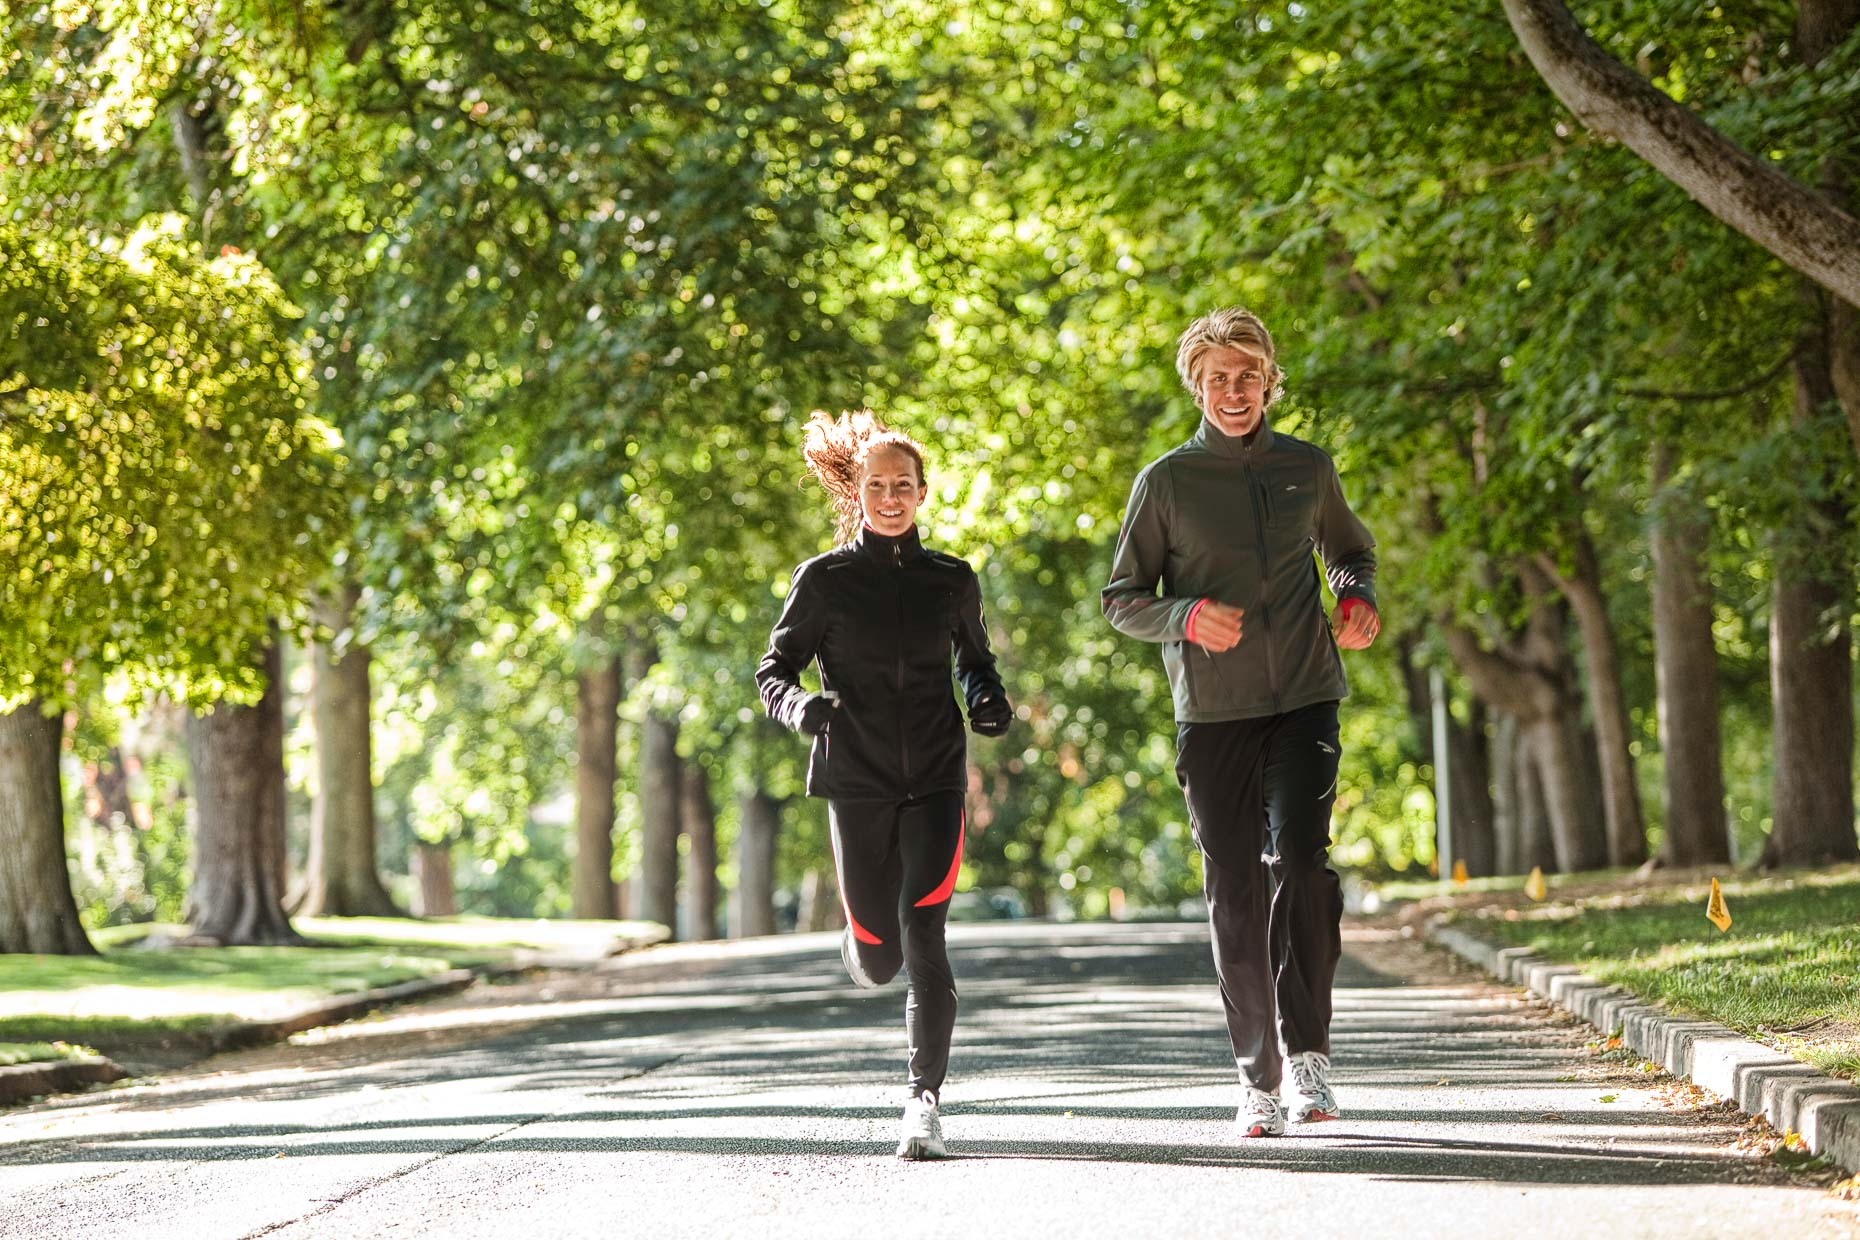 Man, woman, couple in running attire running on street road lined with trees by David Zaitz Photography.